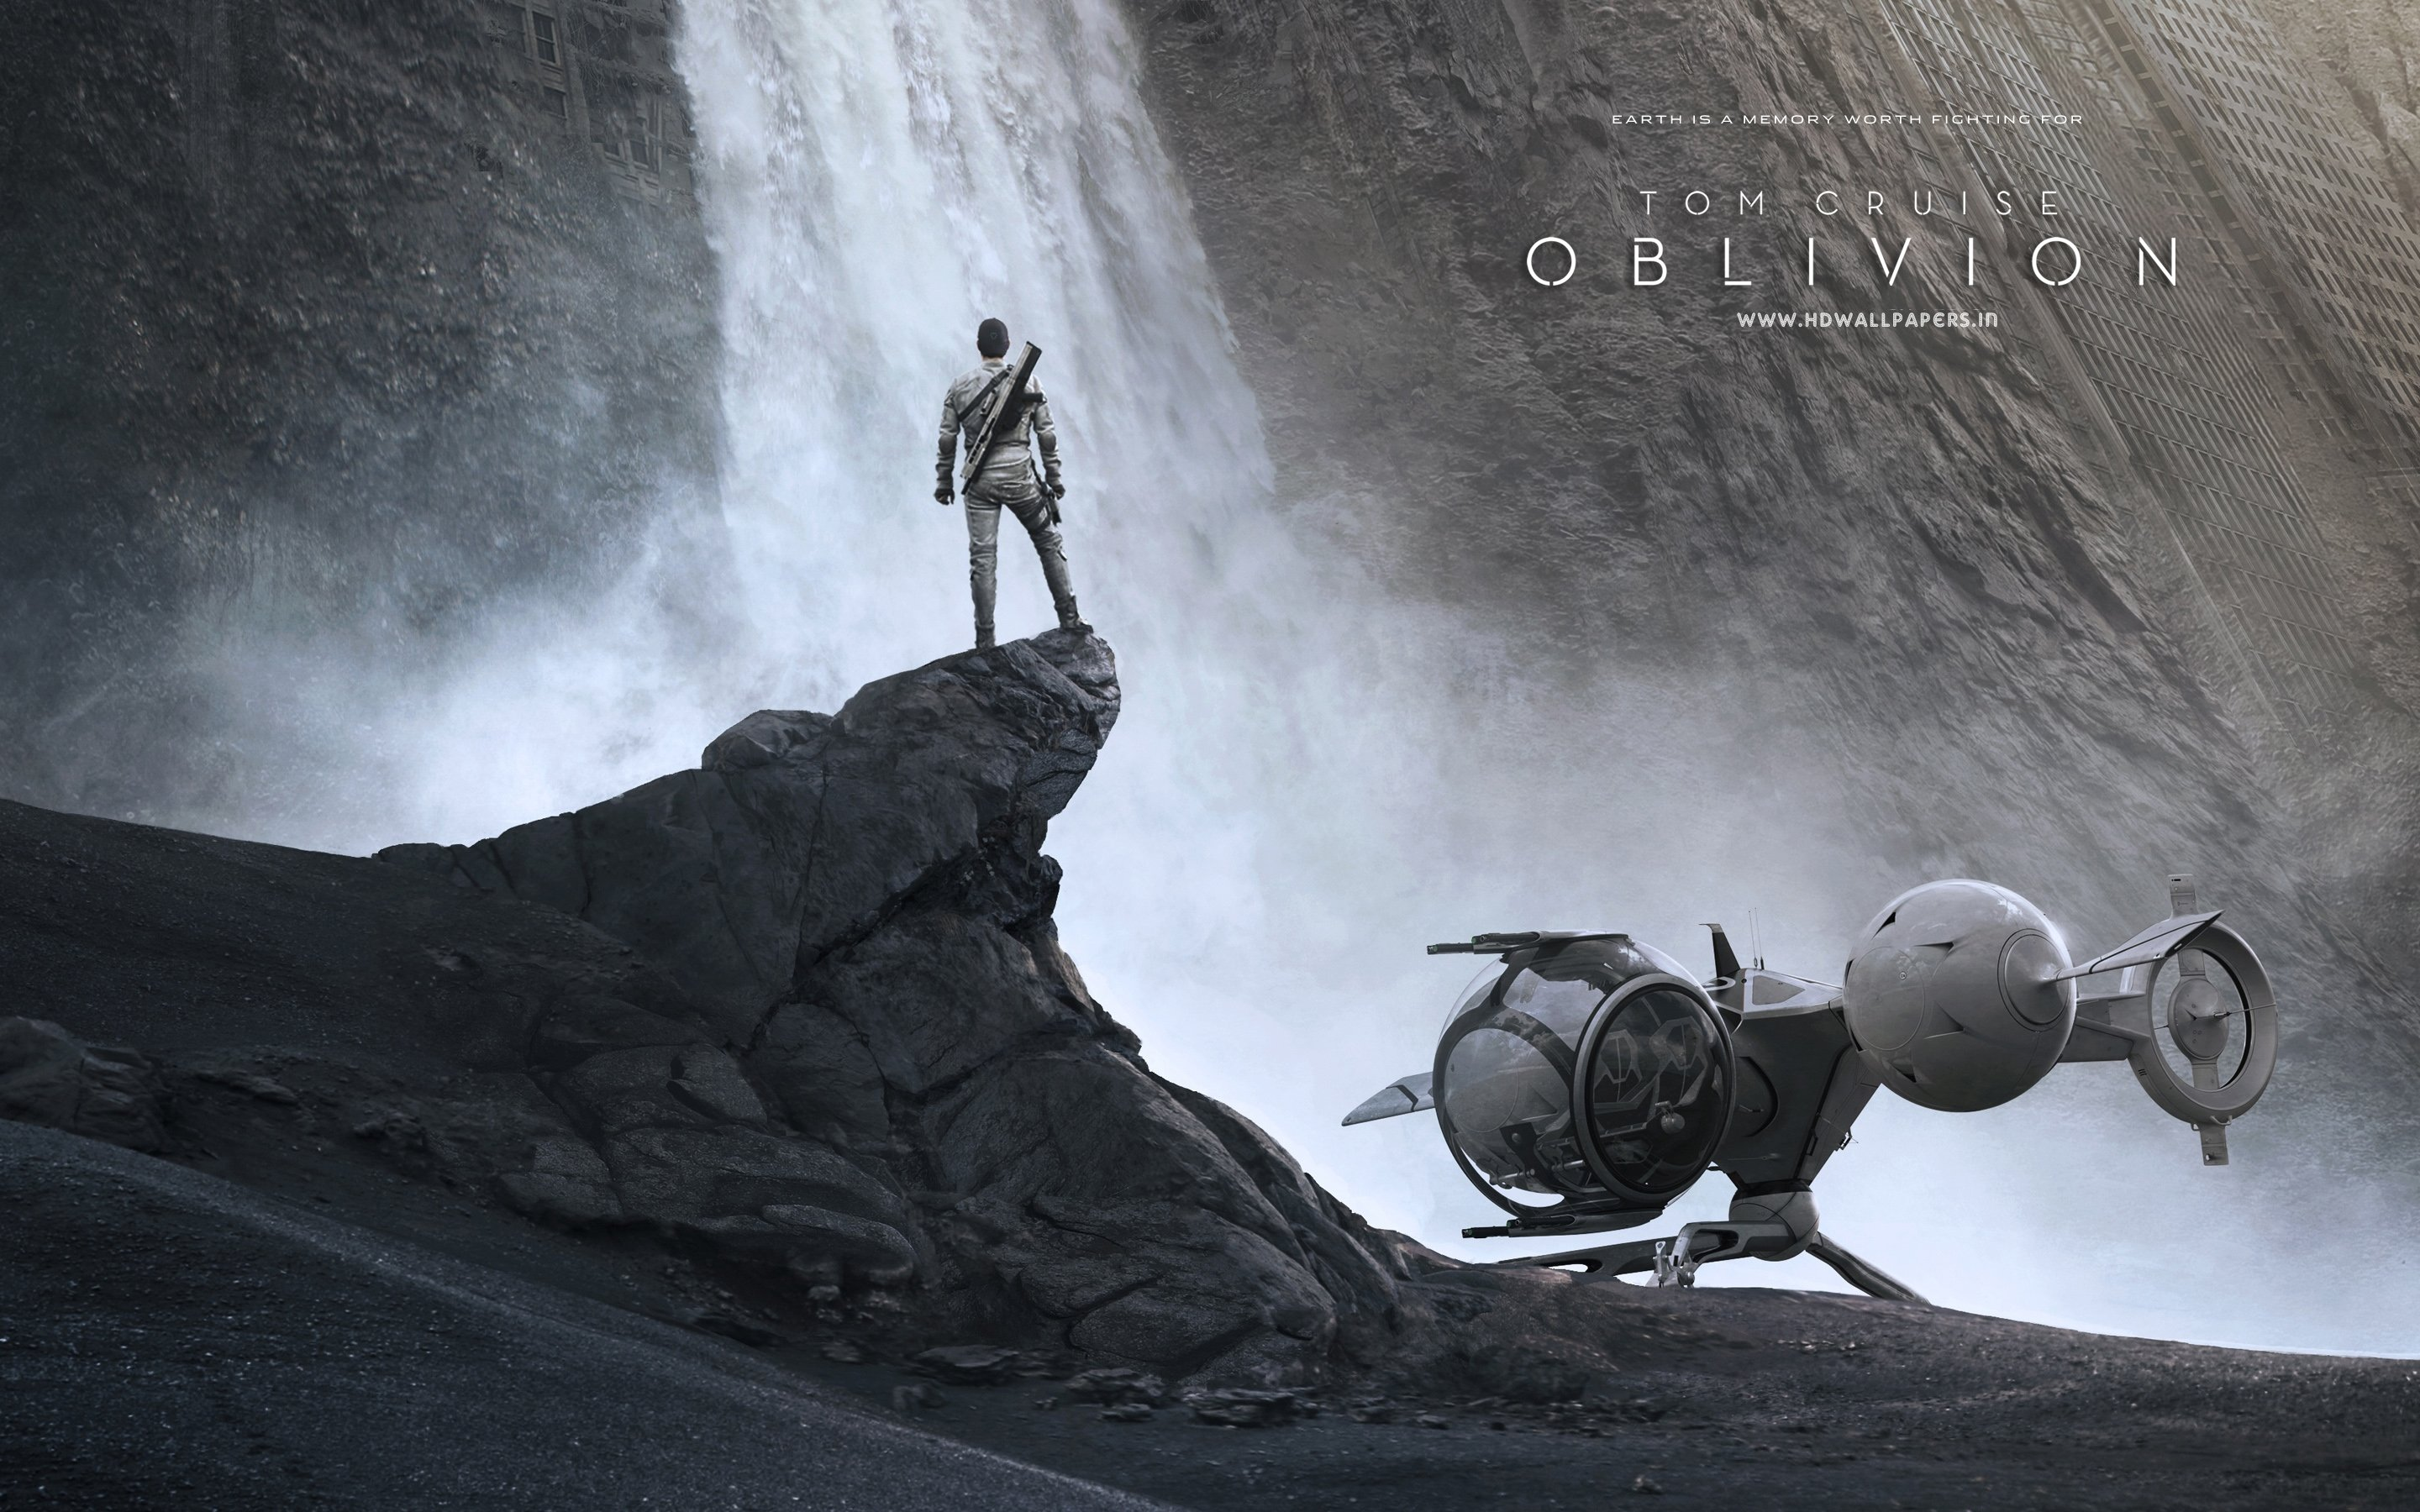 Oblivion Movie Wallpapers HD Wallpapers 2880x1800